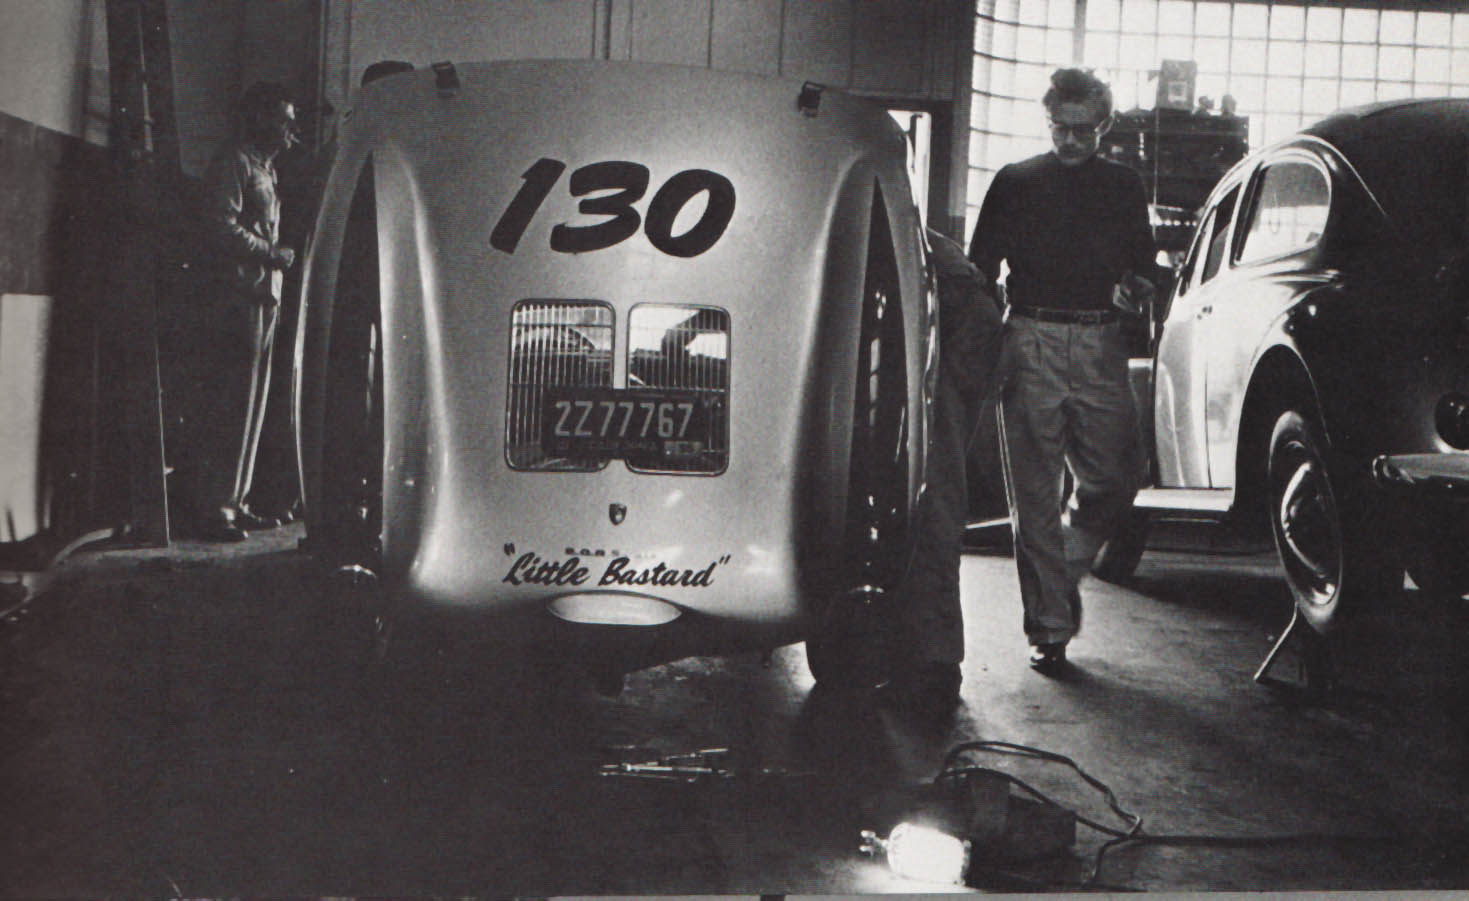 Little-Bastard-was-James-Dean-Porsche-550-Spyder.jpg